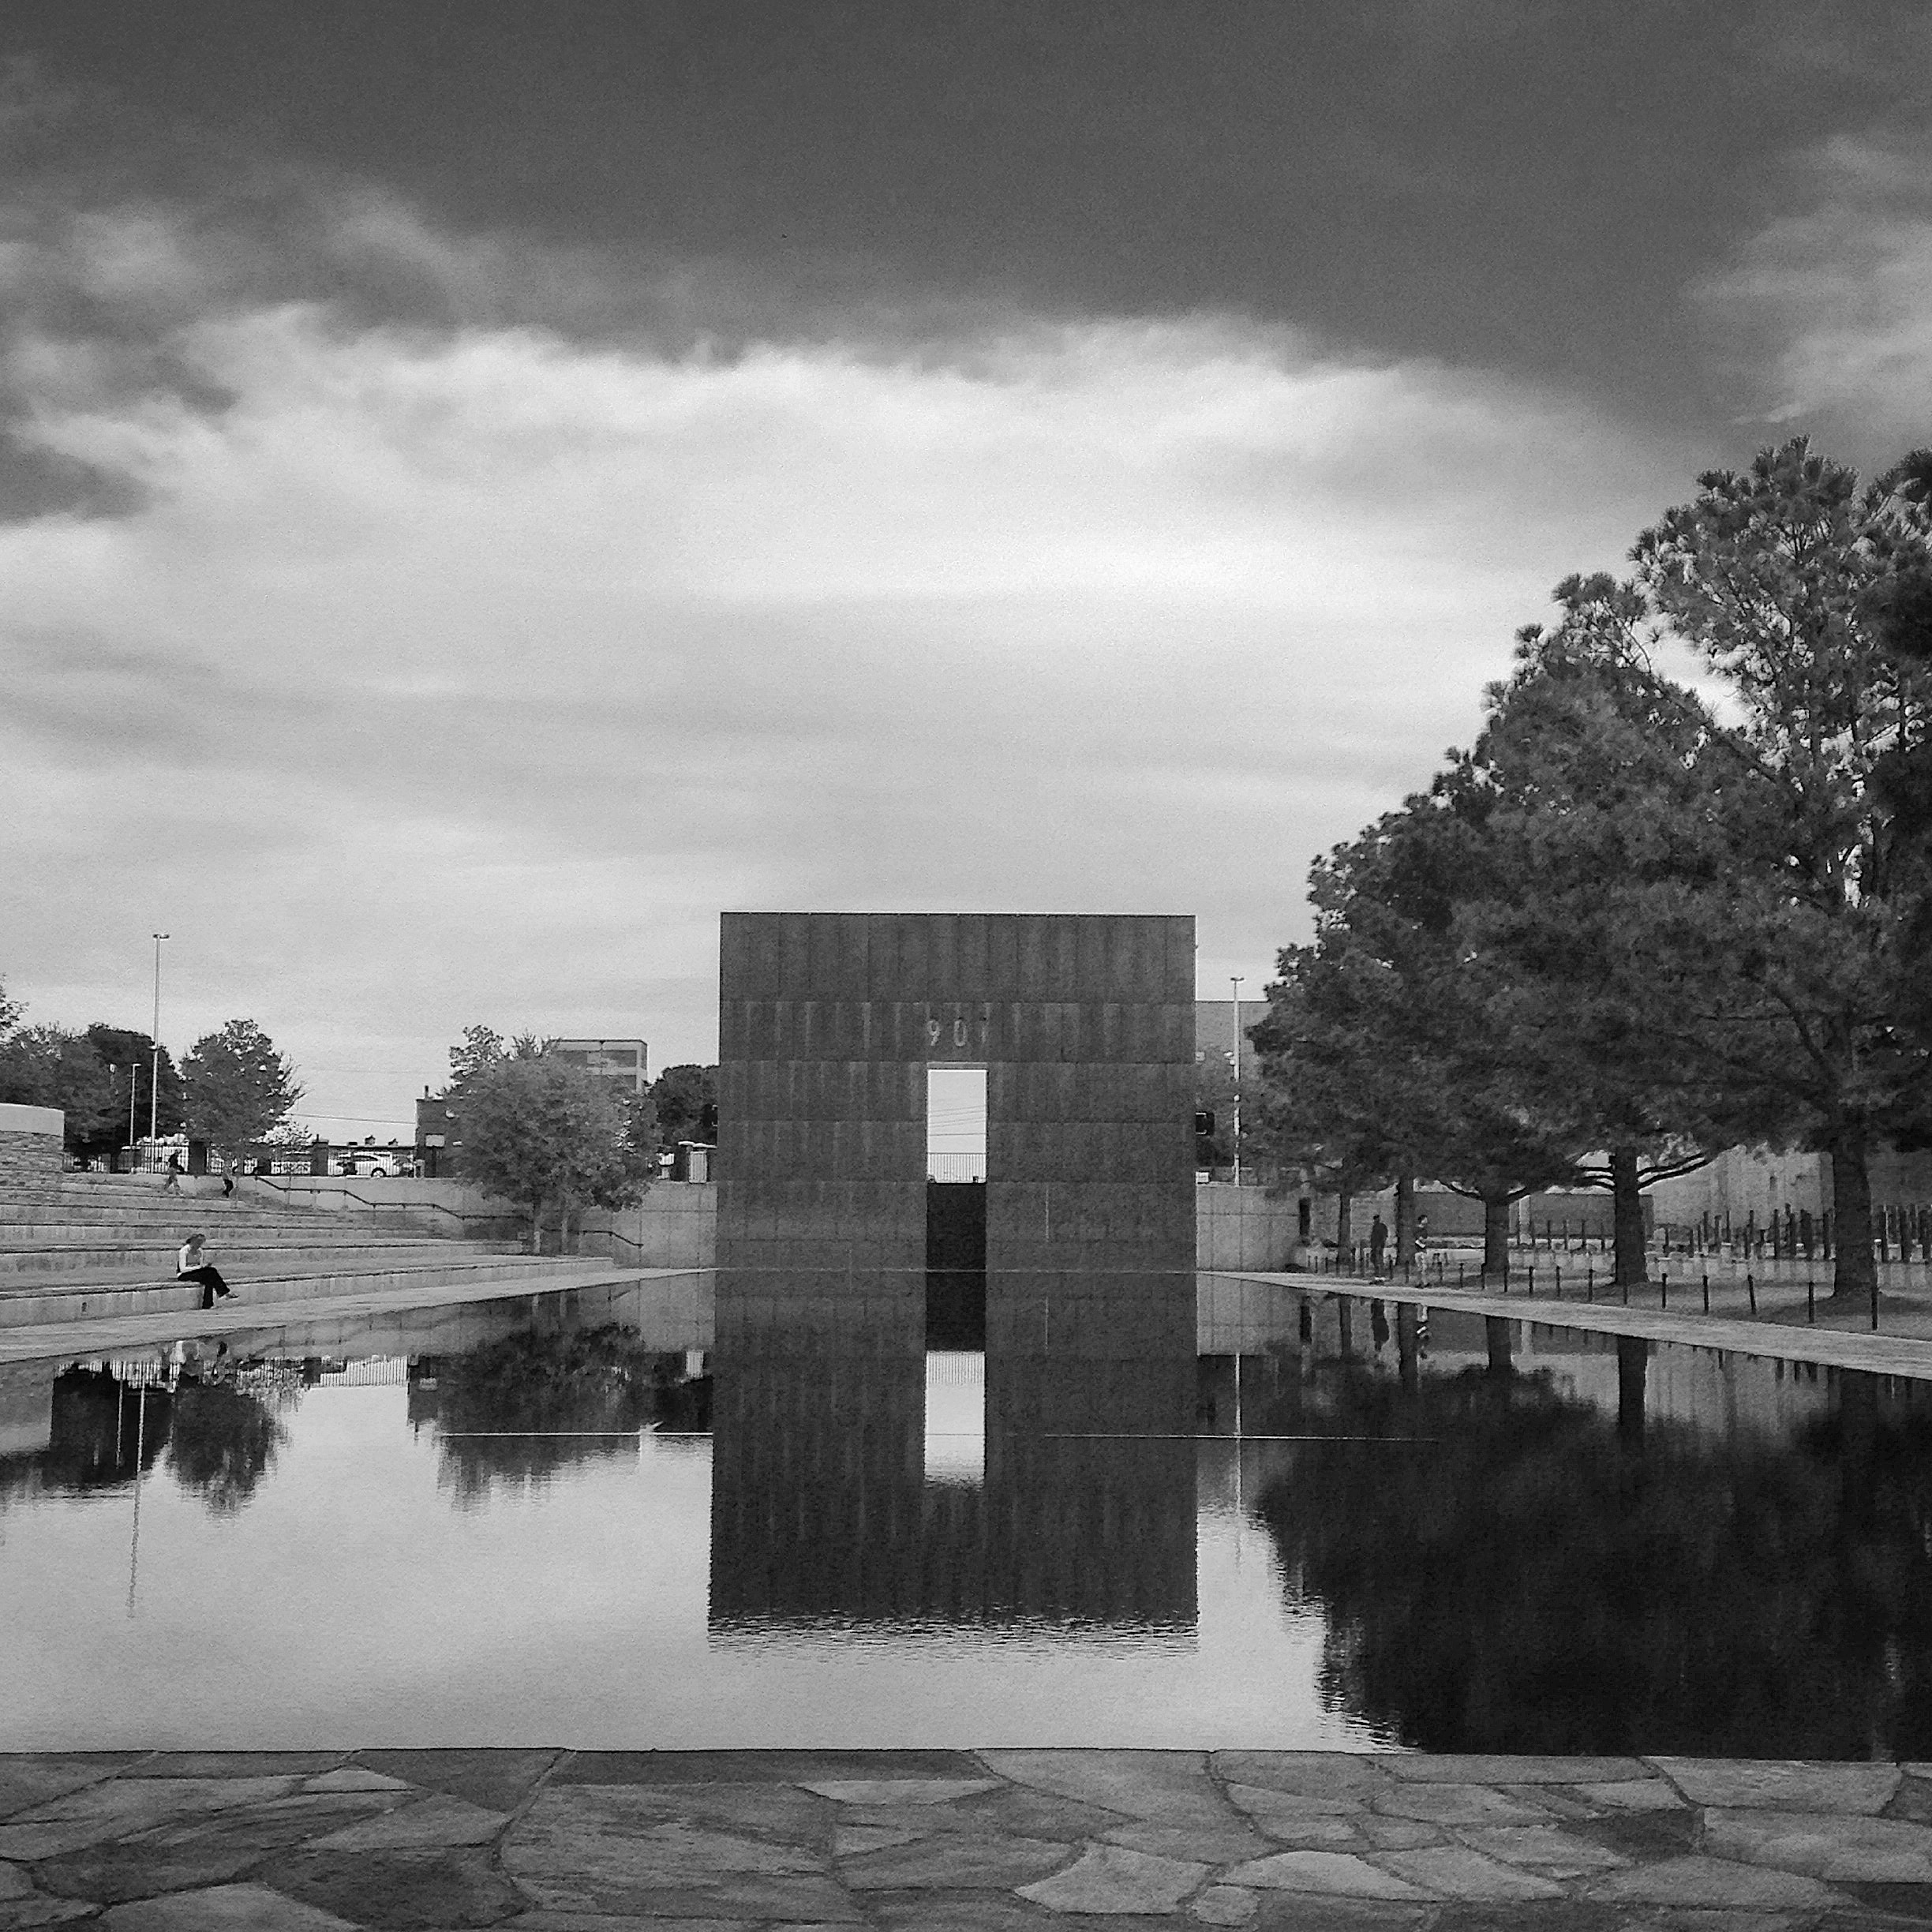 The Oklahoma City National Memorial. Photograph by Andrei Strizek.